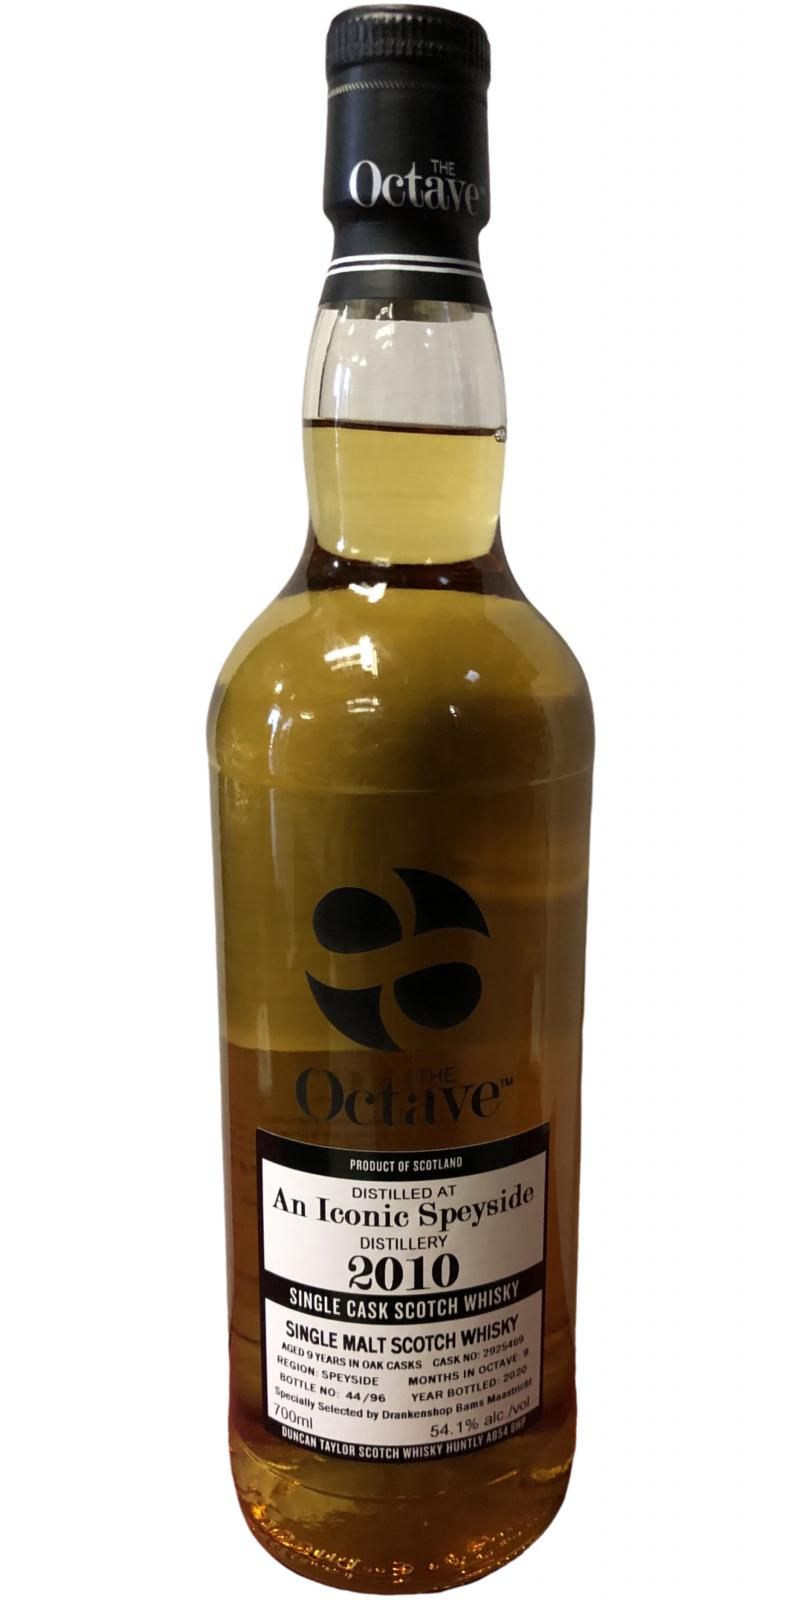 An Iconic Speyside 2010 DT